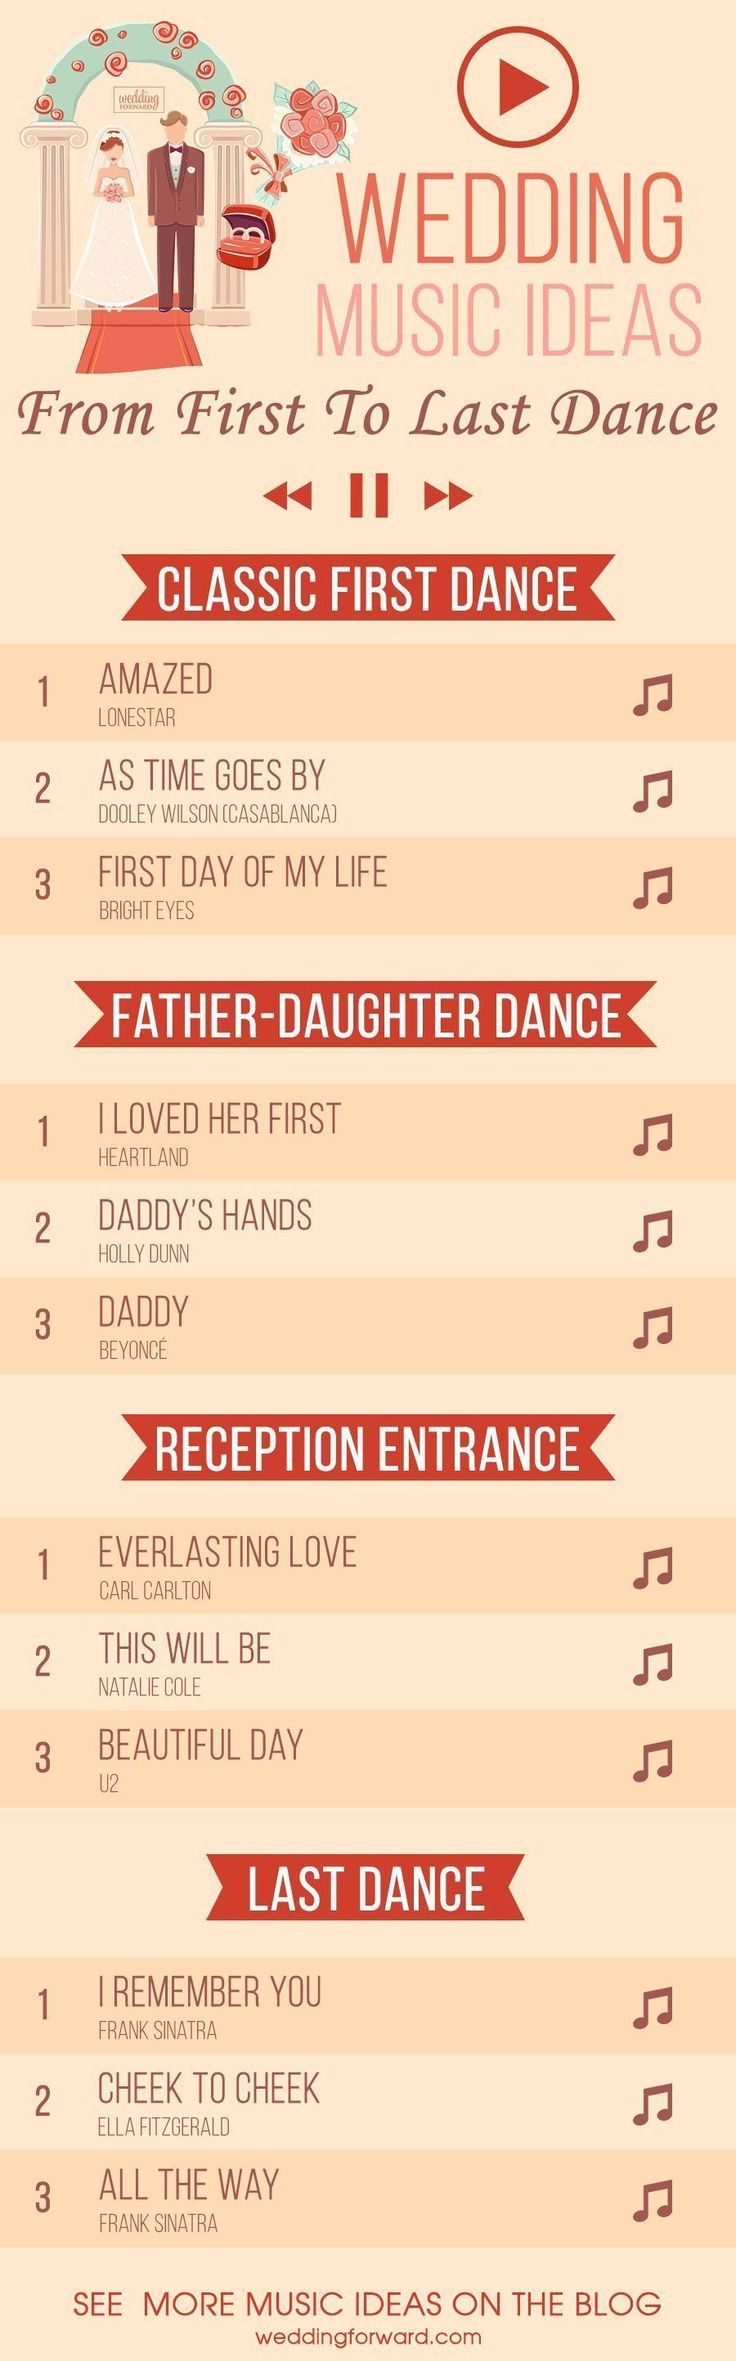 Wedding Music Ideas From-First To Last Dance ❤️ We've put together a few of the best wedding music ideas that will help you with the selection process every part of the wedding day from wedding ceremony, to first song, to the last dance. See more: http://www.weddingforward.com/wedding-music-ideas-first-last-dance/ #wedding #music #playlist #BestWeddingTips #helpwithwedding #weddingceremonyideas